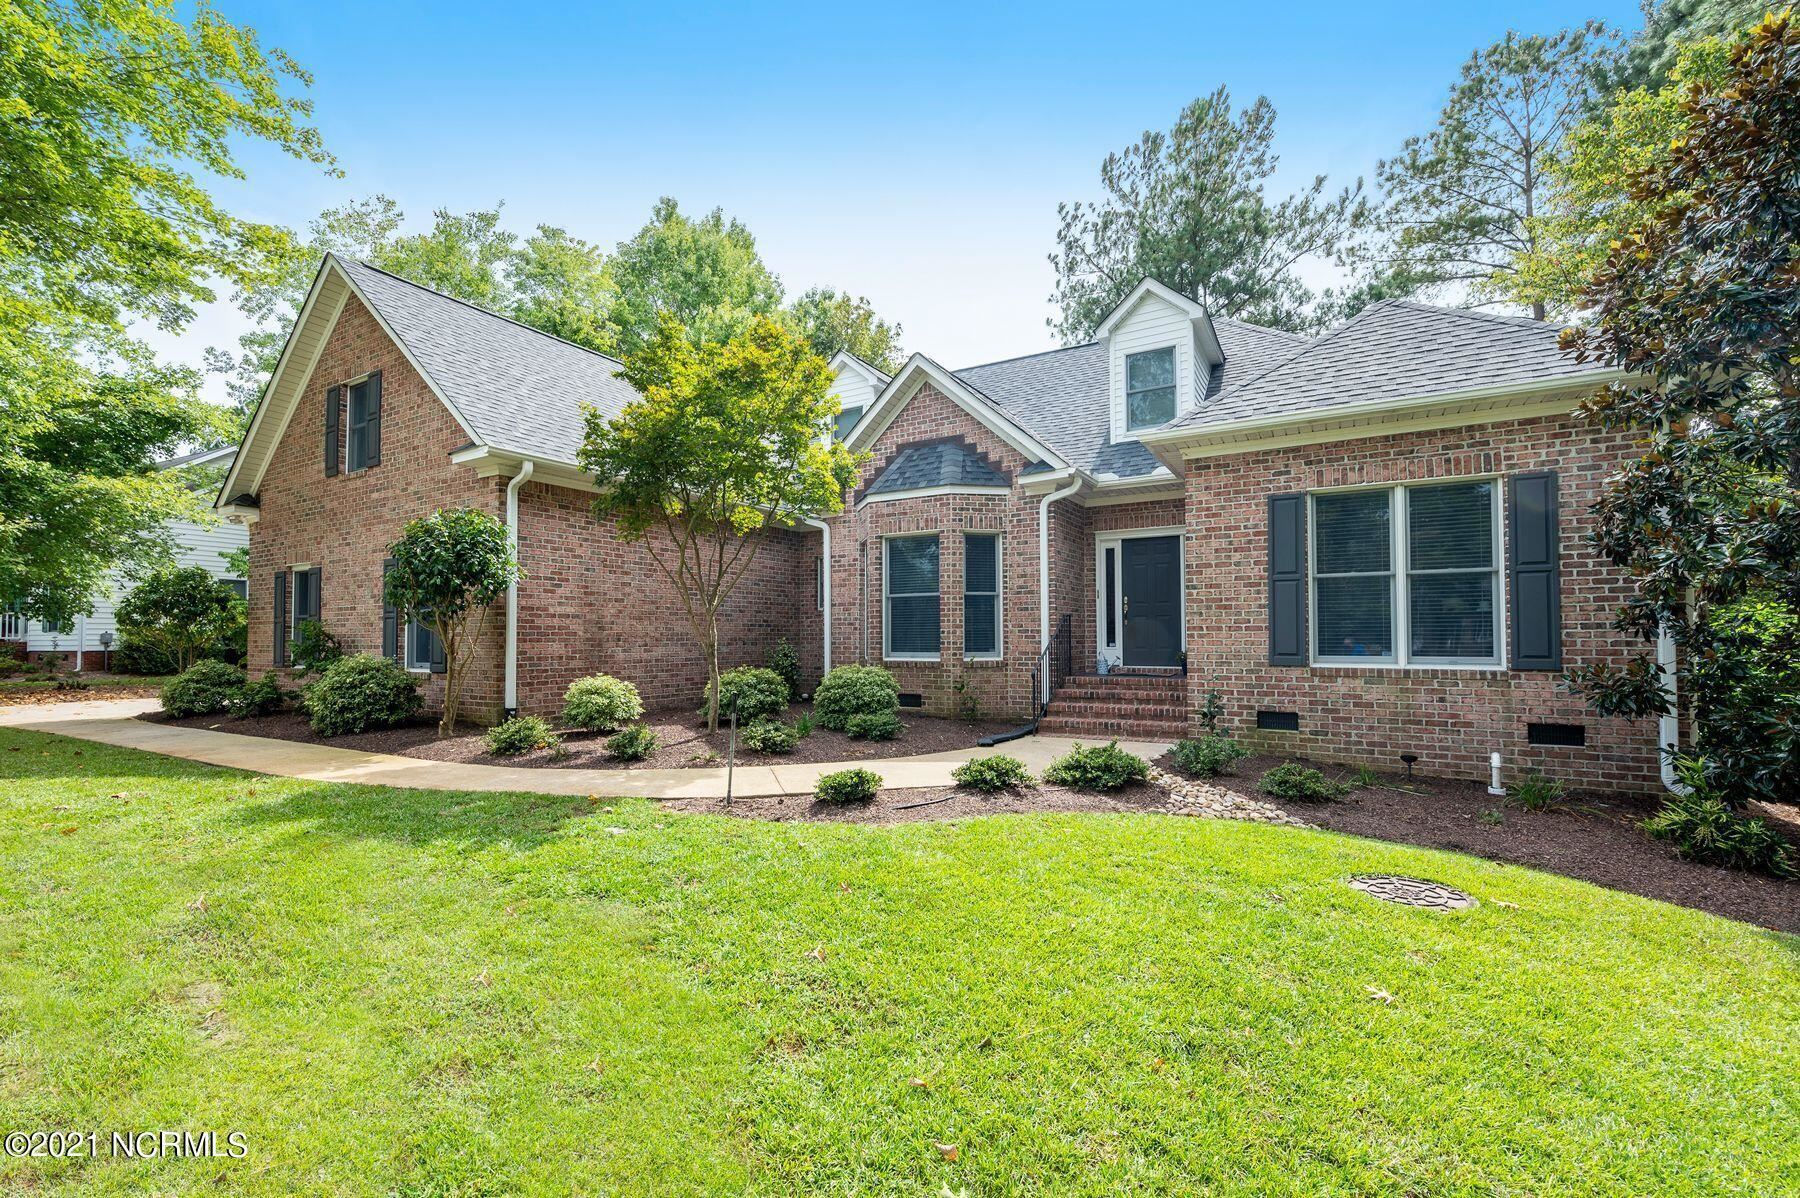 Photo of 109 Connecticut Drive, Chocowinity, NC 27817 (MLS # 100291800)